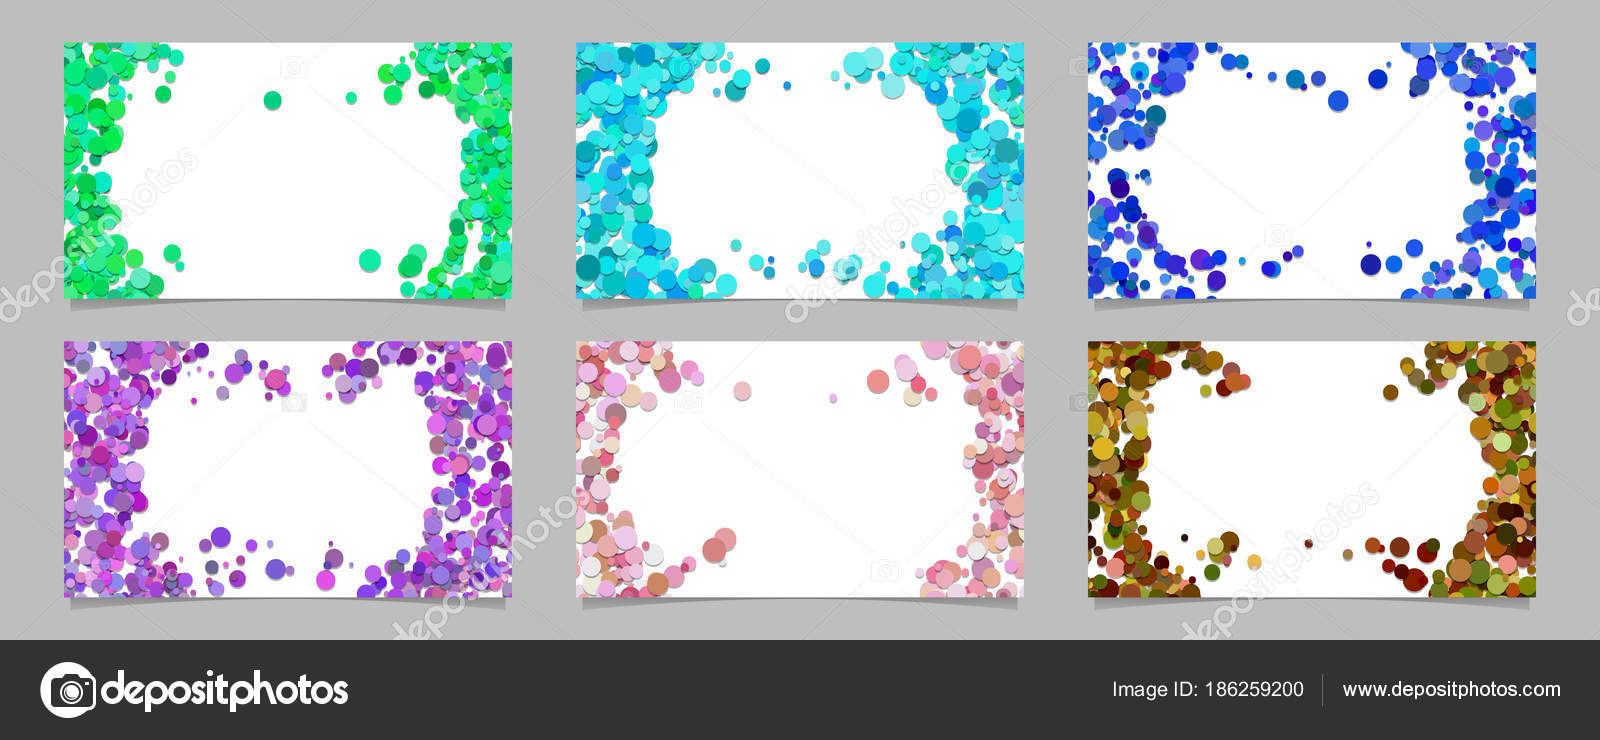 Abstract business card background set with colored diagonal stripes abstract business card background set with colored diagonal stripes stock vector reheart Image collections